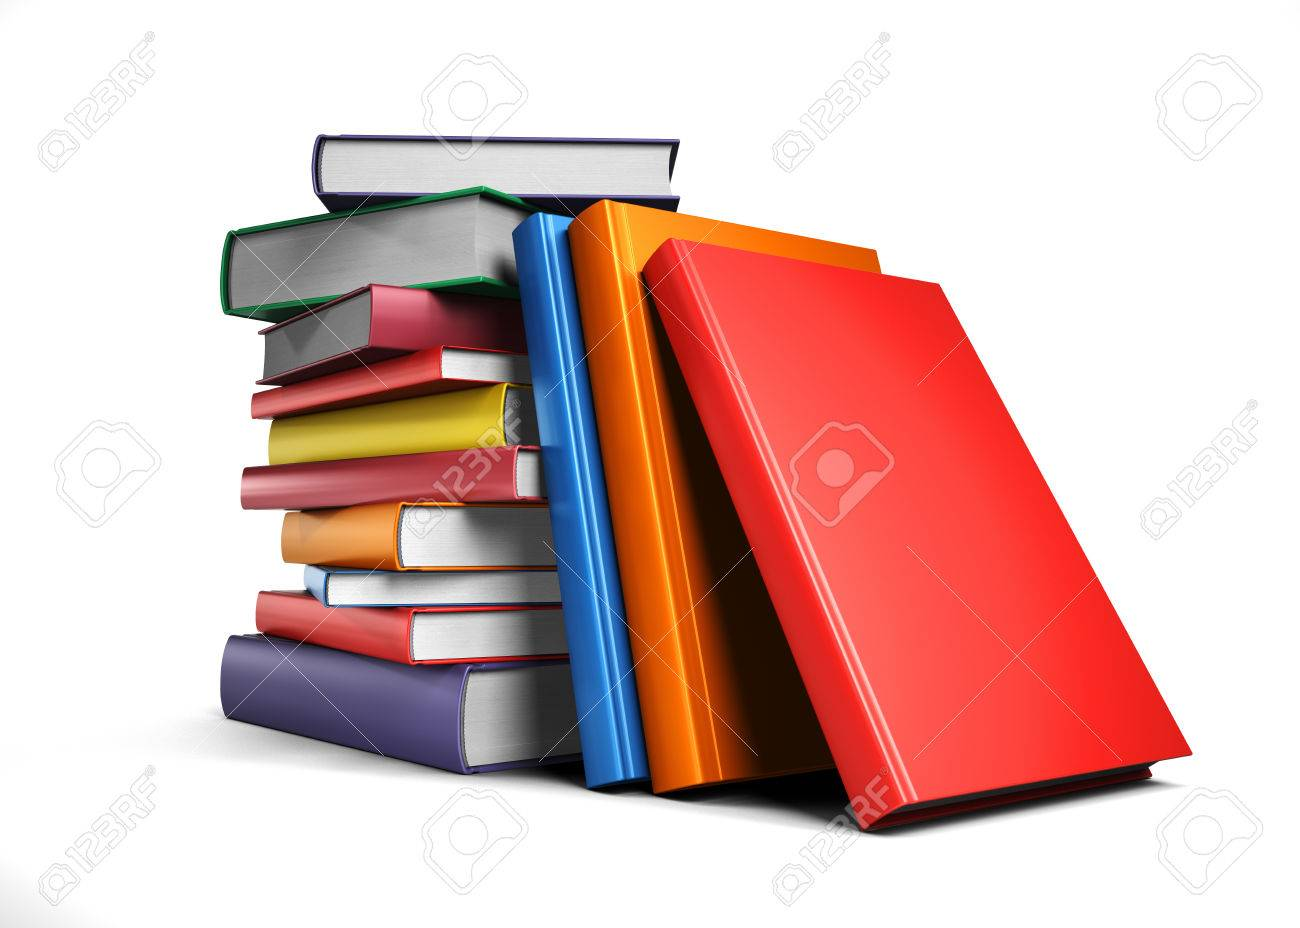 Pile of Books isolated on white background - 40973250